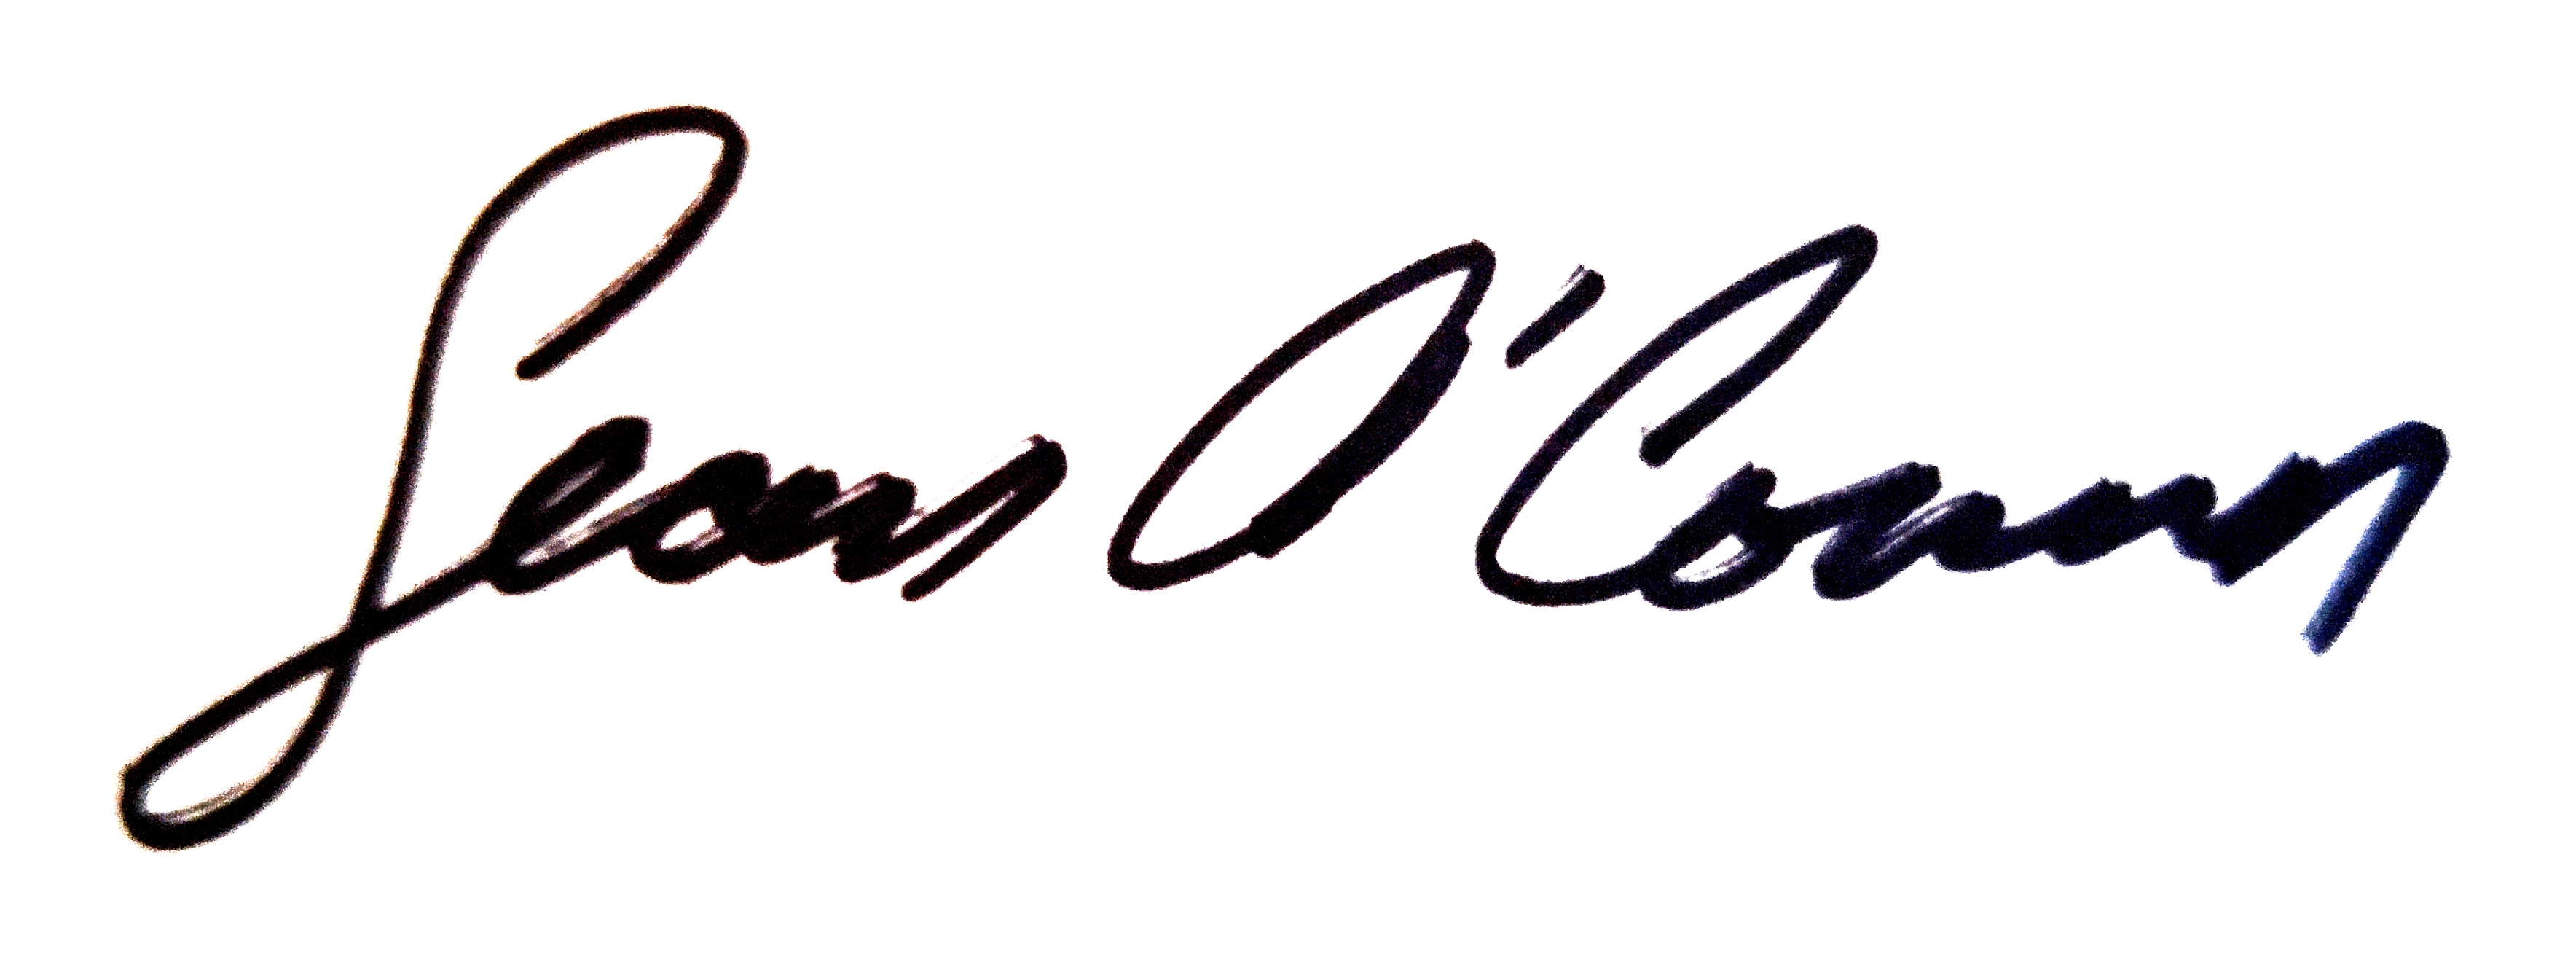 Sean OCONNOR Signature